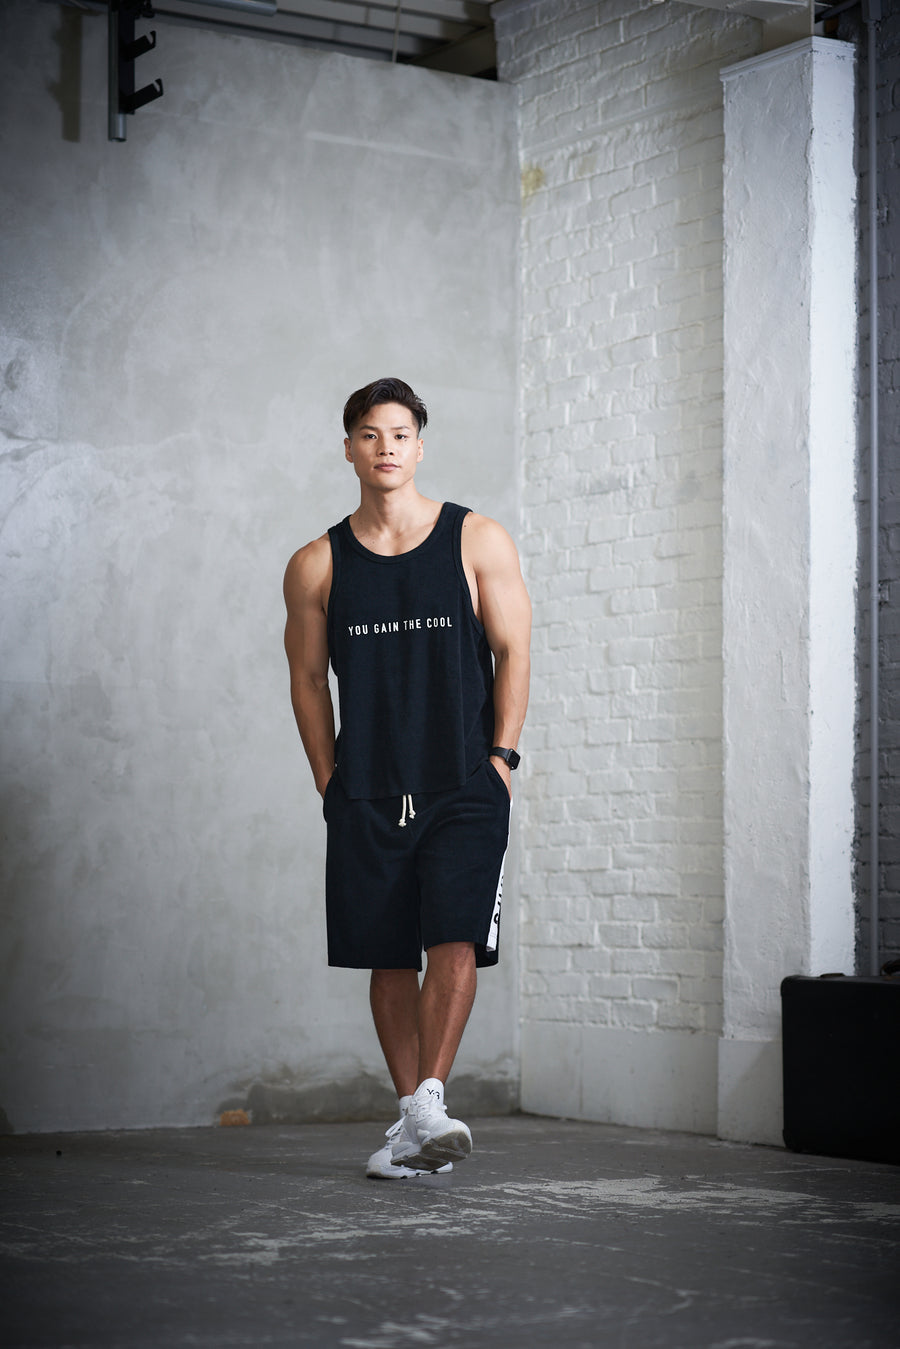 PILE TANK TOP[YOU GAIN THE COOL]- Black